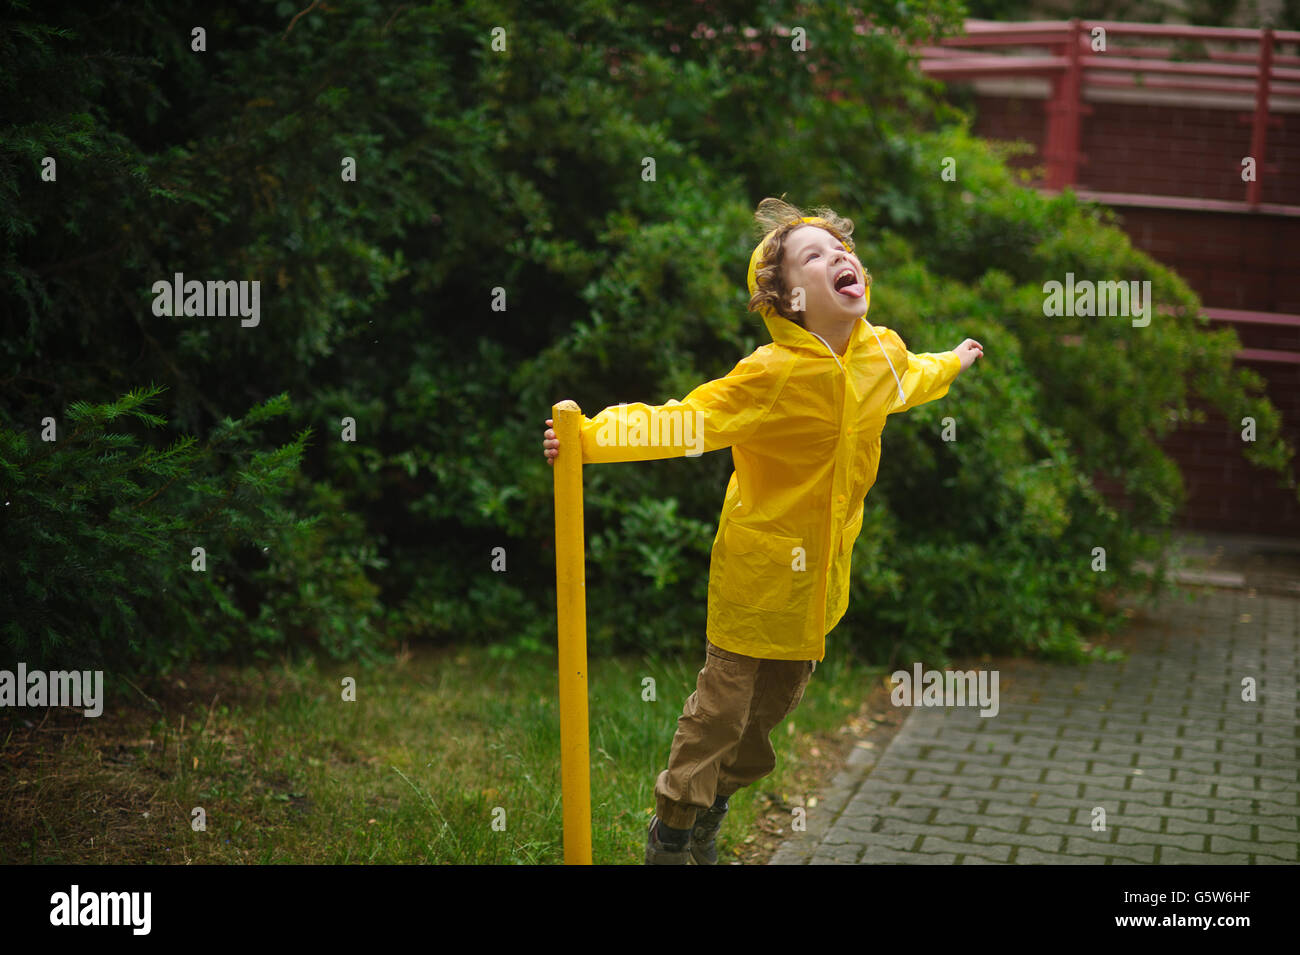 Boy in a yellow raincoat stand under a drizzle. He holds a support in the yard of the house and imagines something - Stock Image